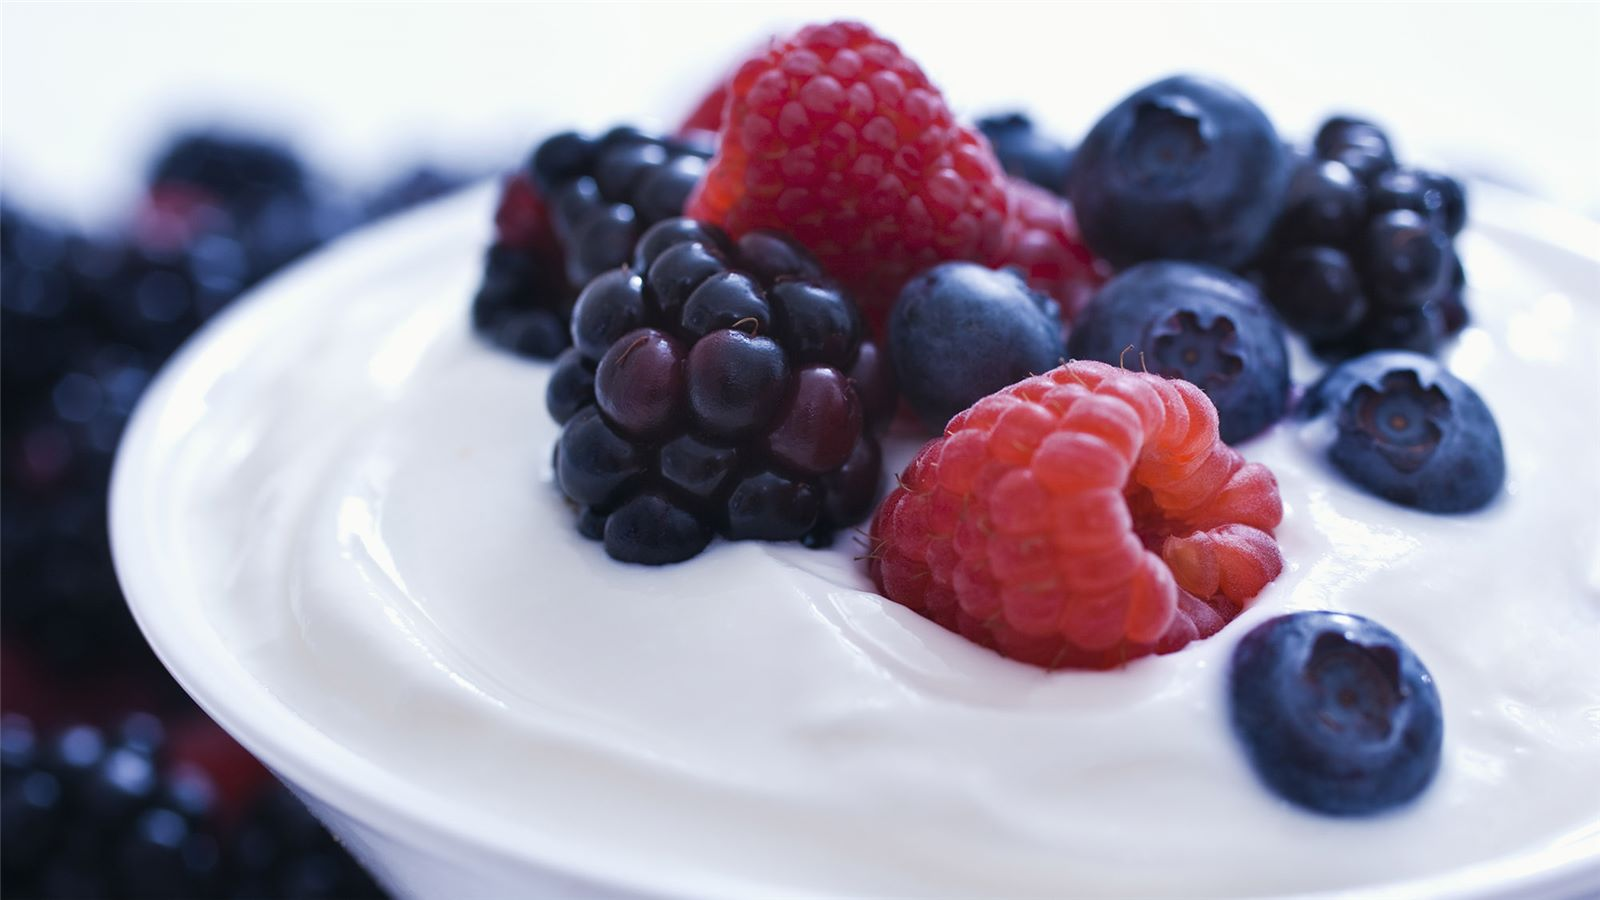 Yoghurt bowl with fruit